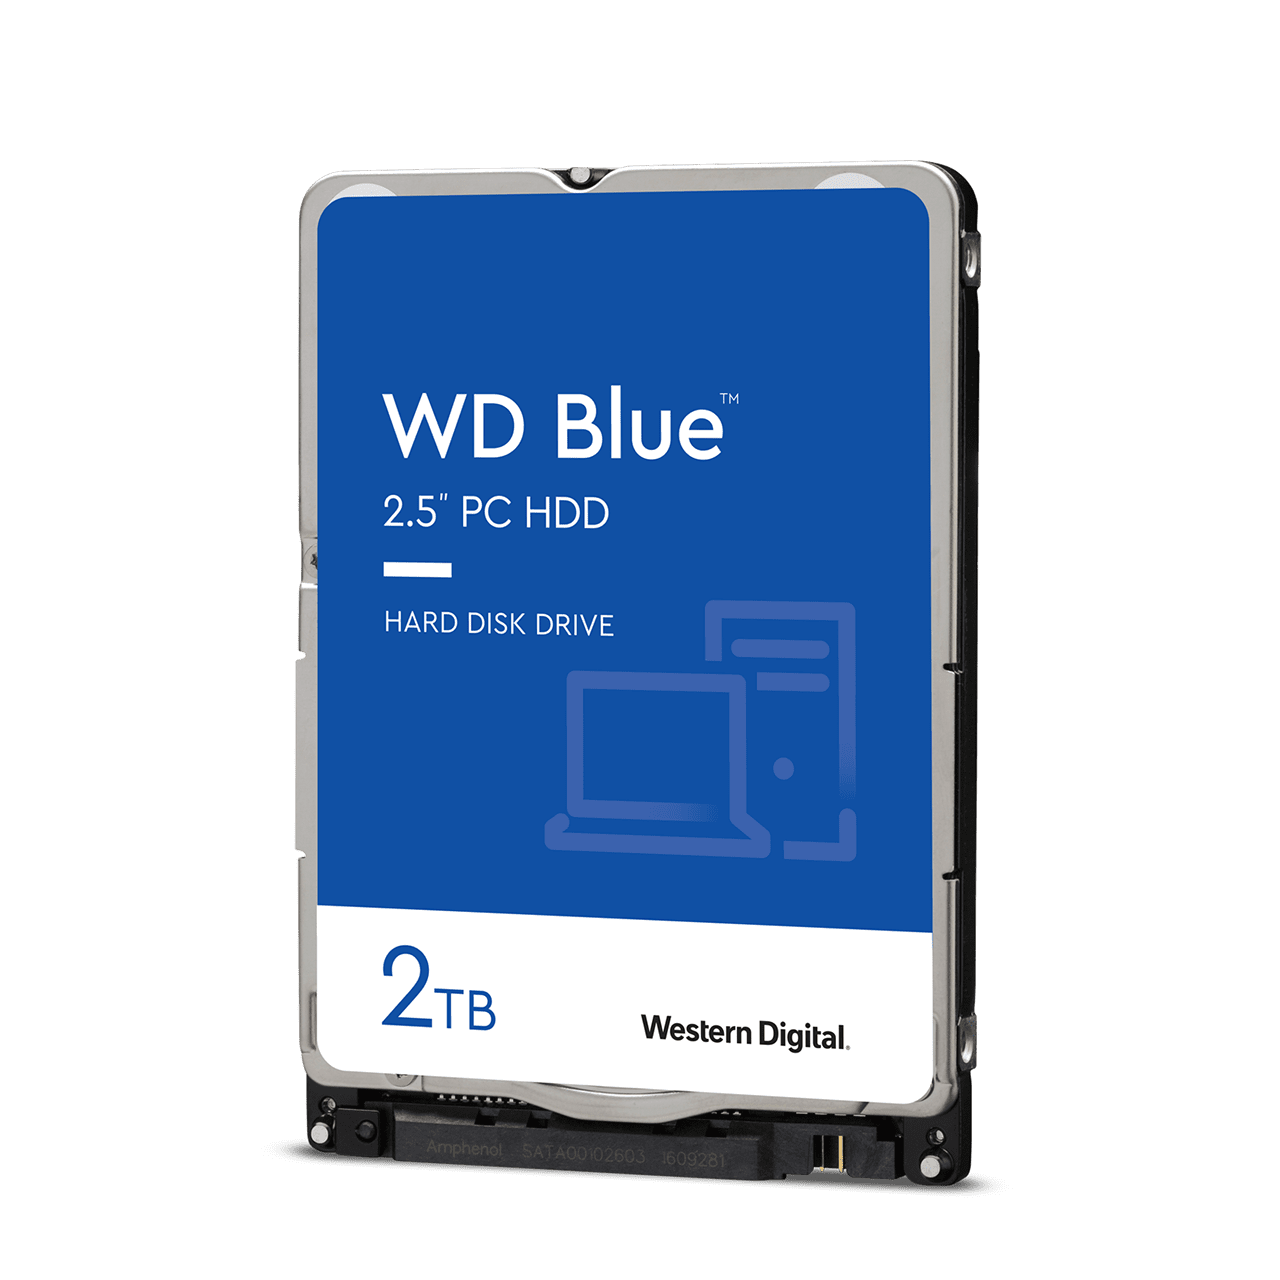 WD Blue™ 2TB PC Hard Drive - Image4